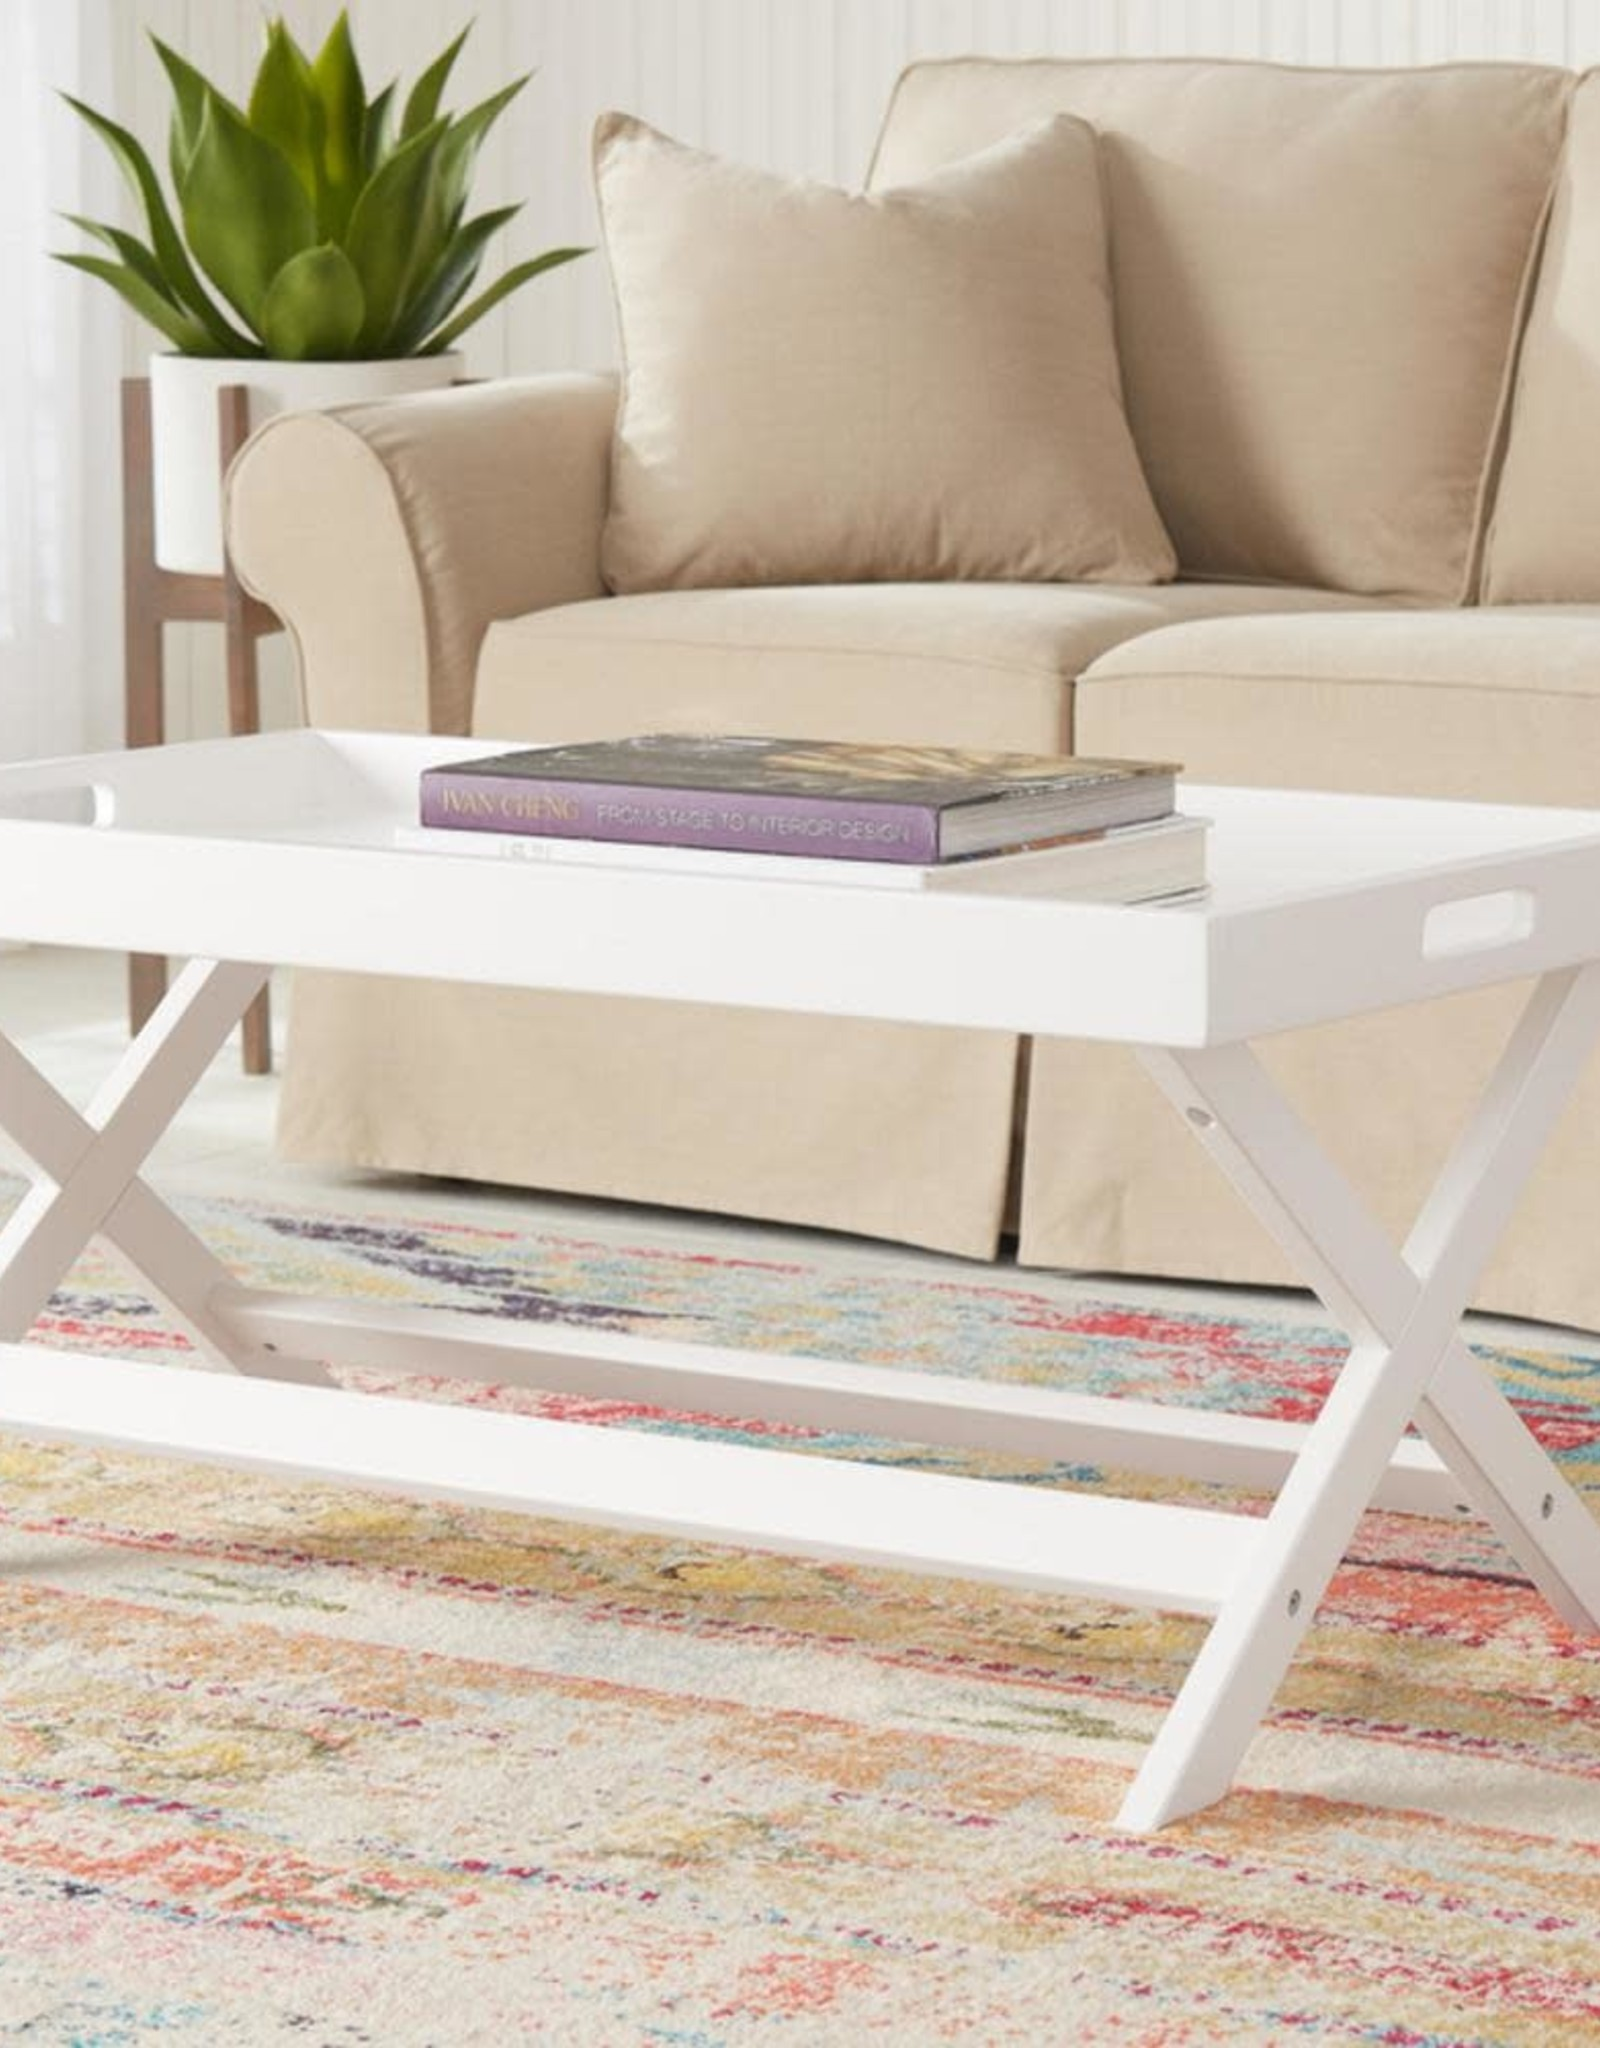 StyleWell Rectangular White Wood Tray Top Coffee Table (40 in. W x 18 in. H)